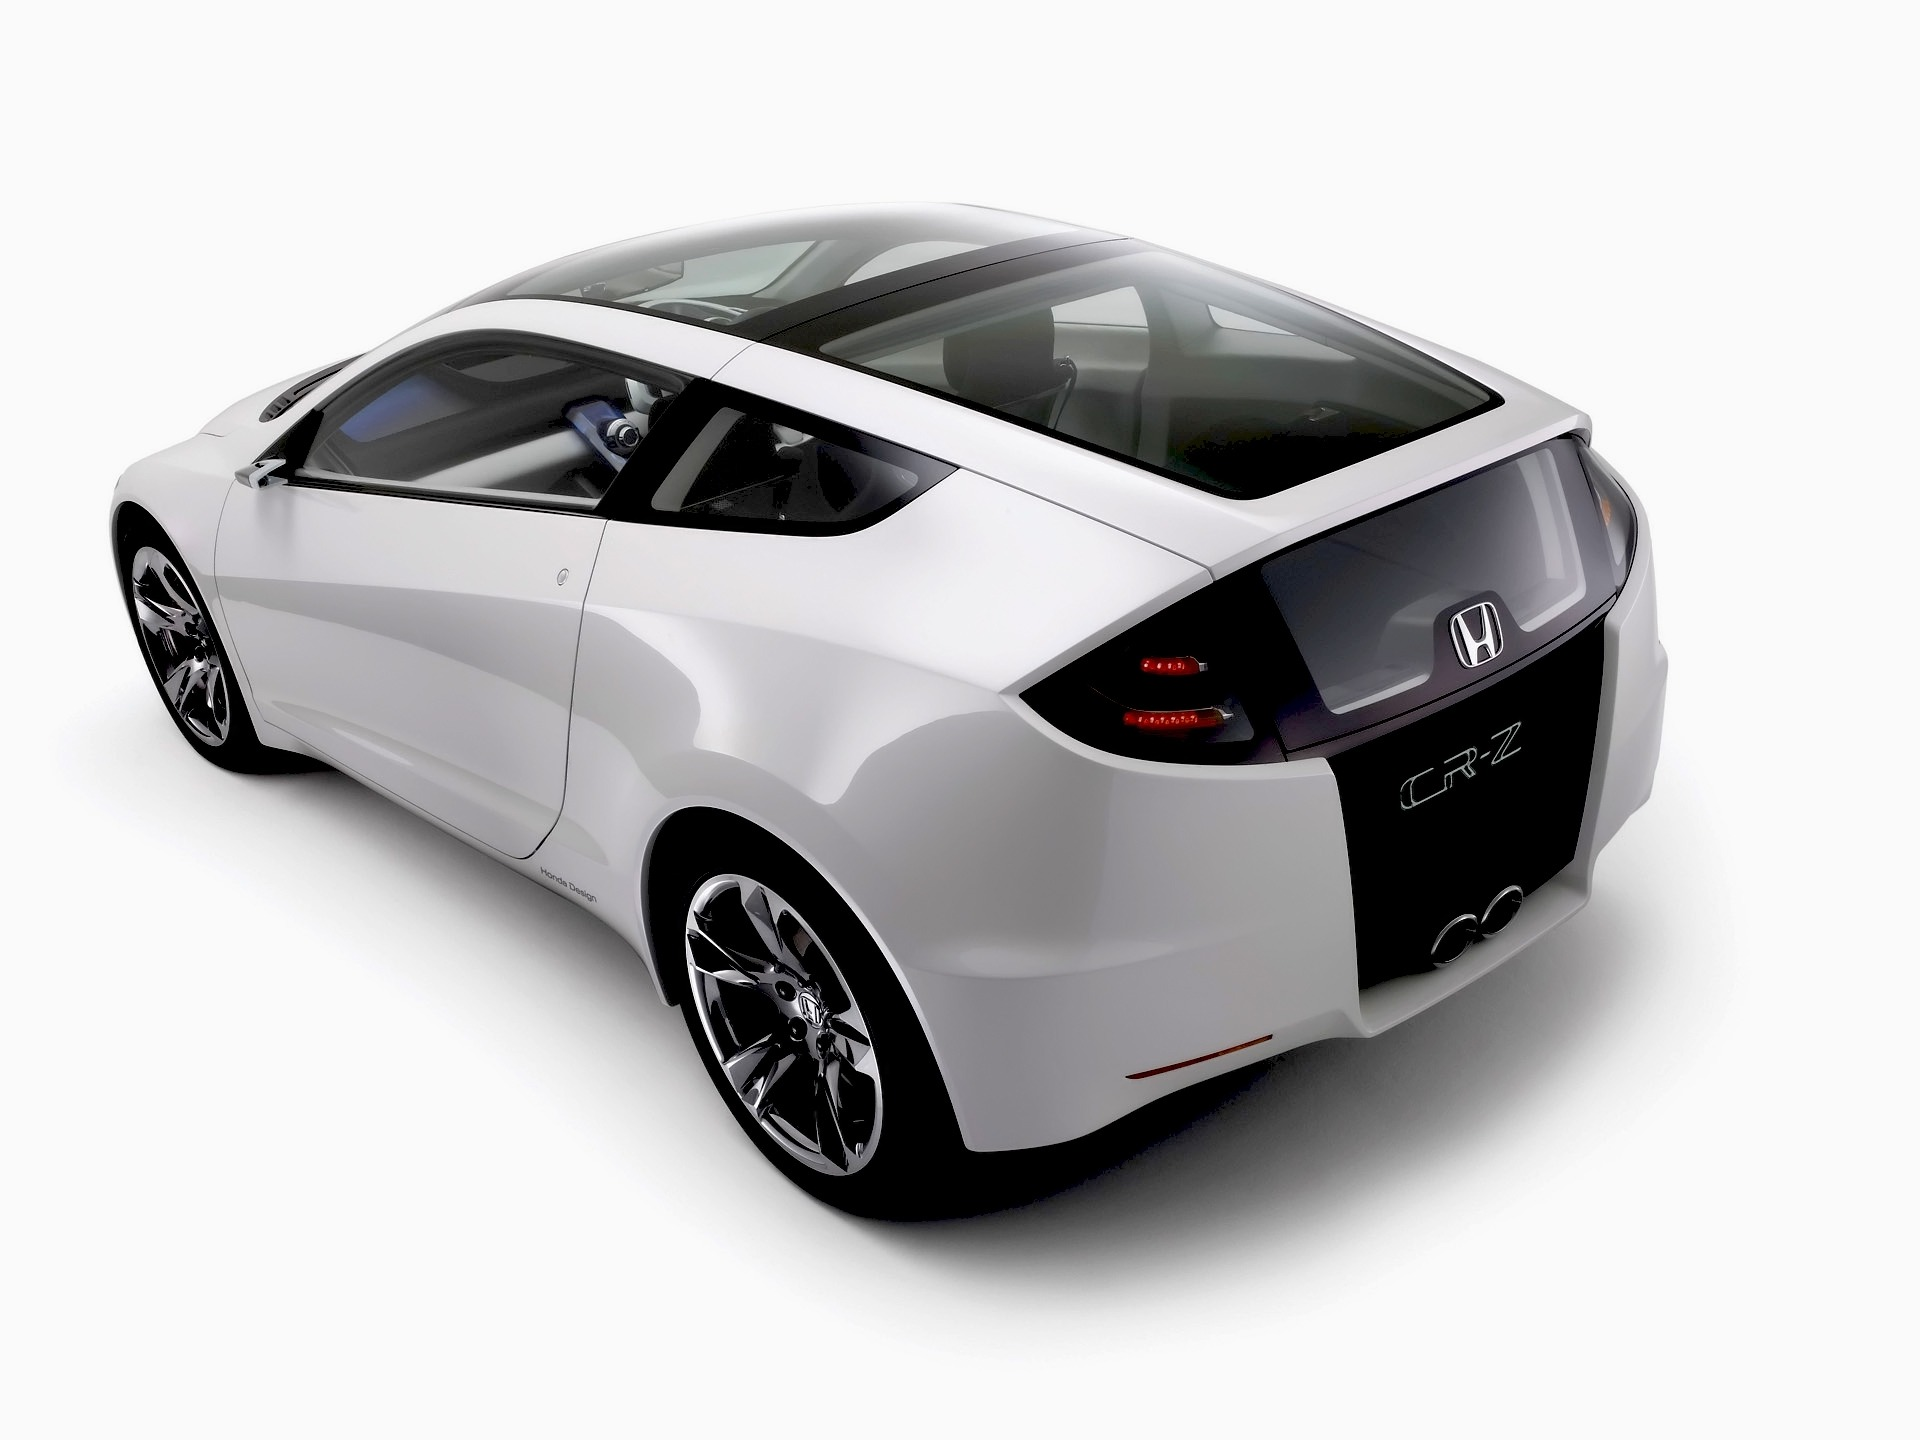 Wallpaper download car - Honda Cr Z Concept Car Wallpaper Honda Cars